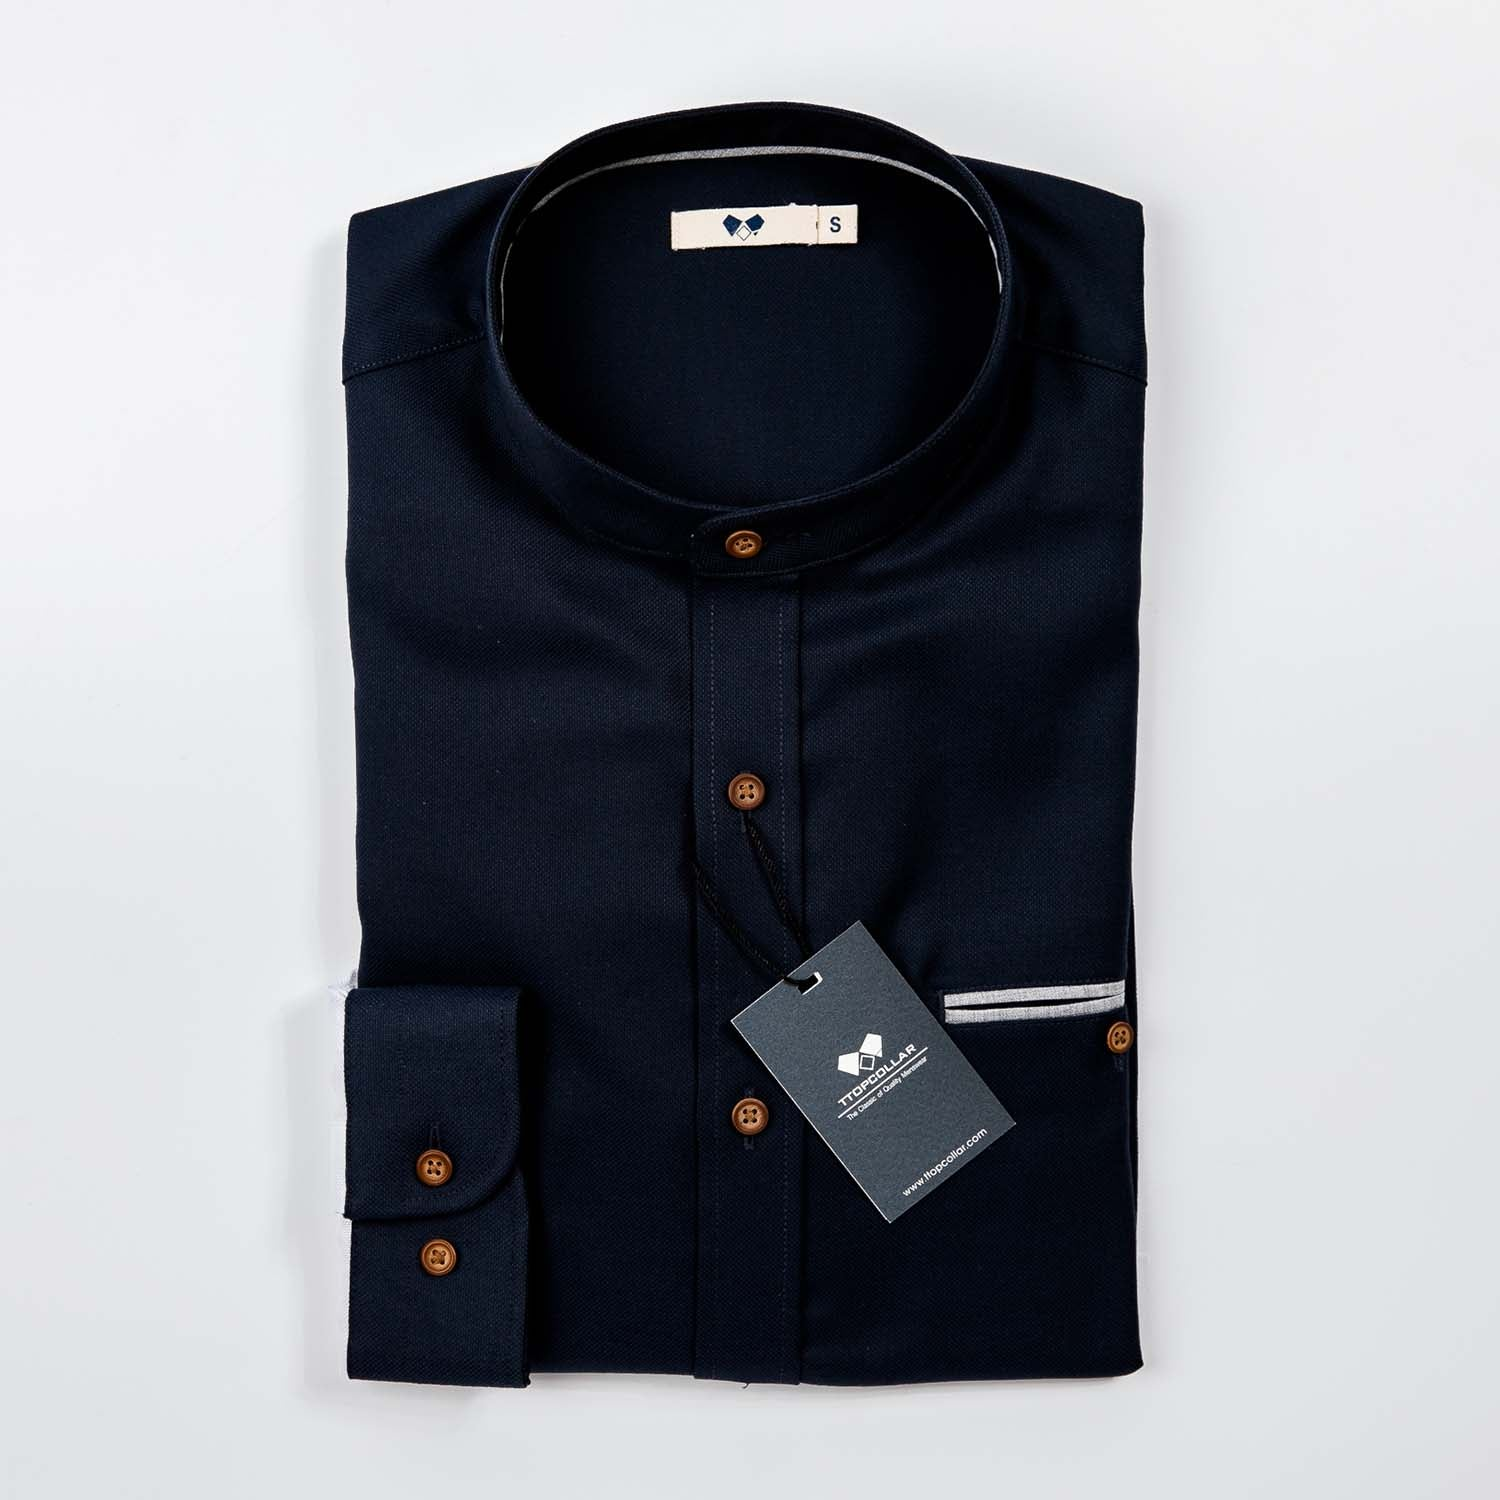 LONG SLEEVE TWO-TONE CHINESE COLLAR ( NAVY/WHITE)